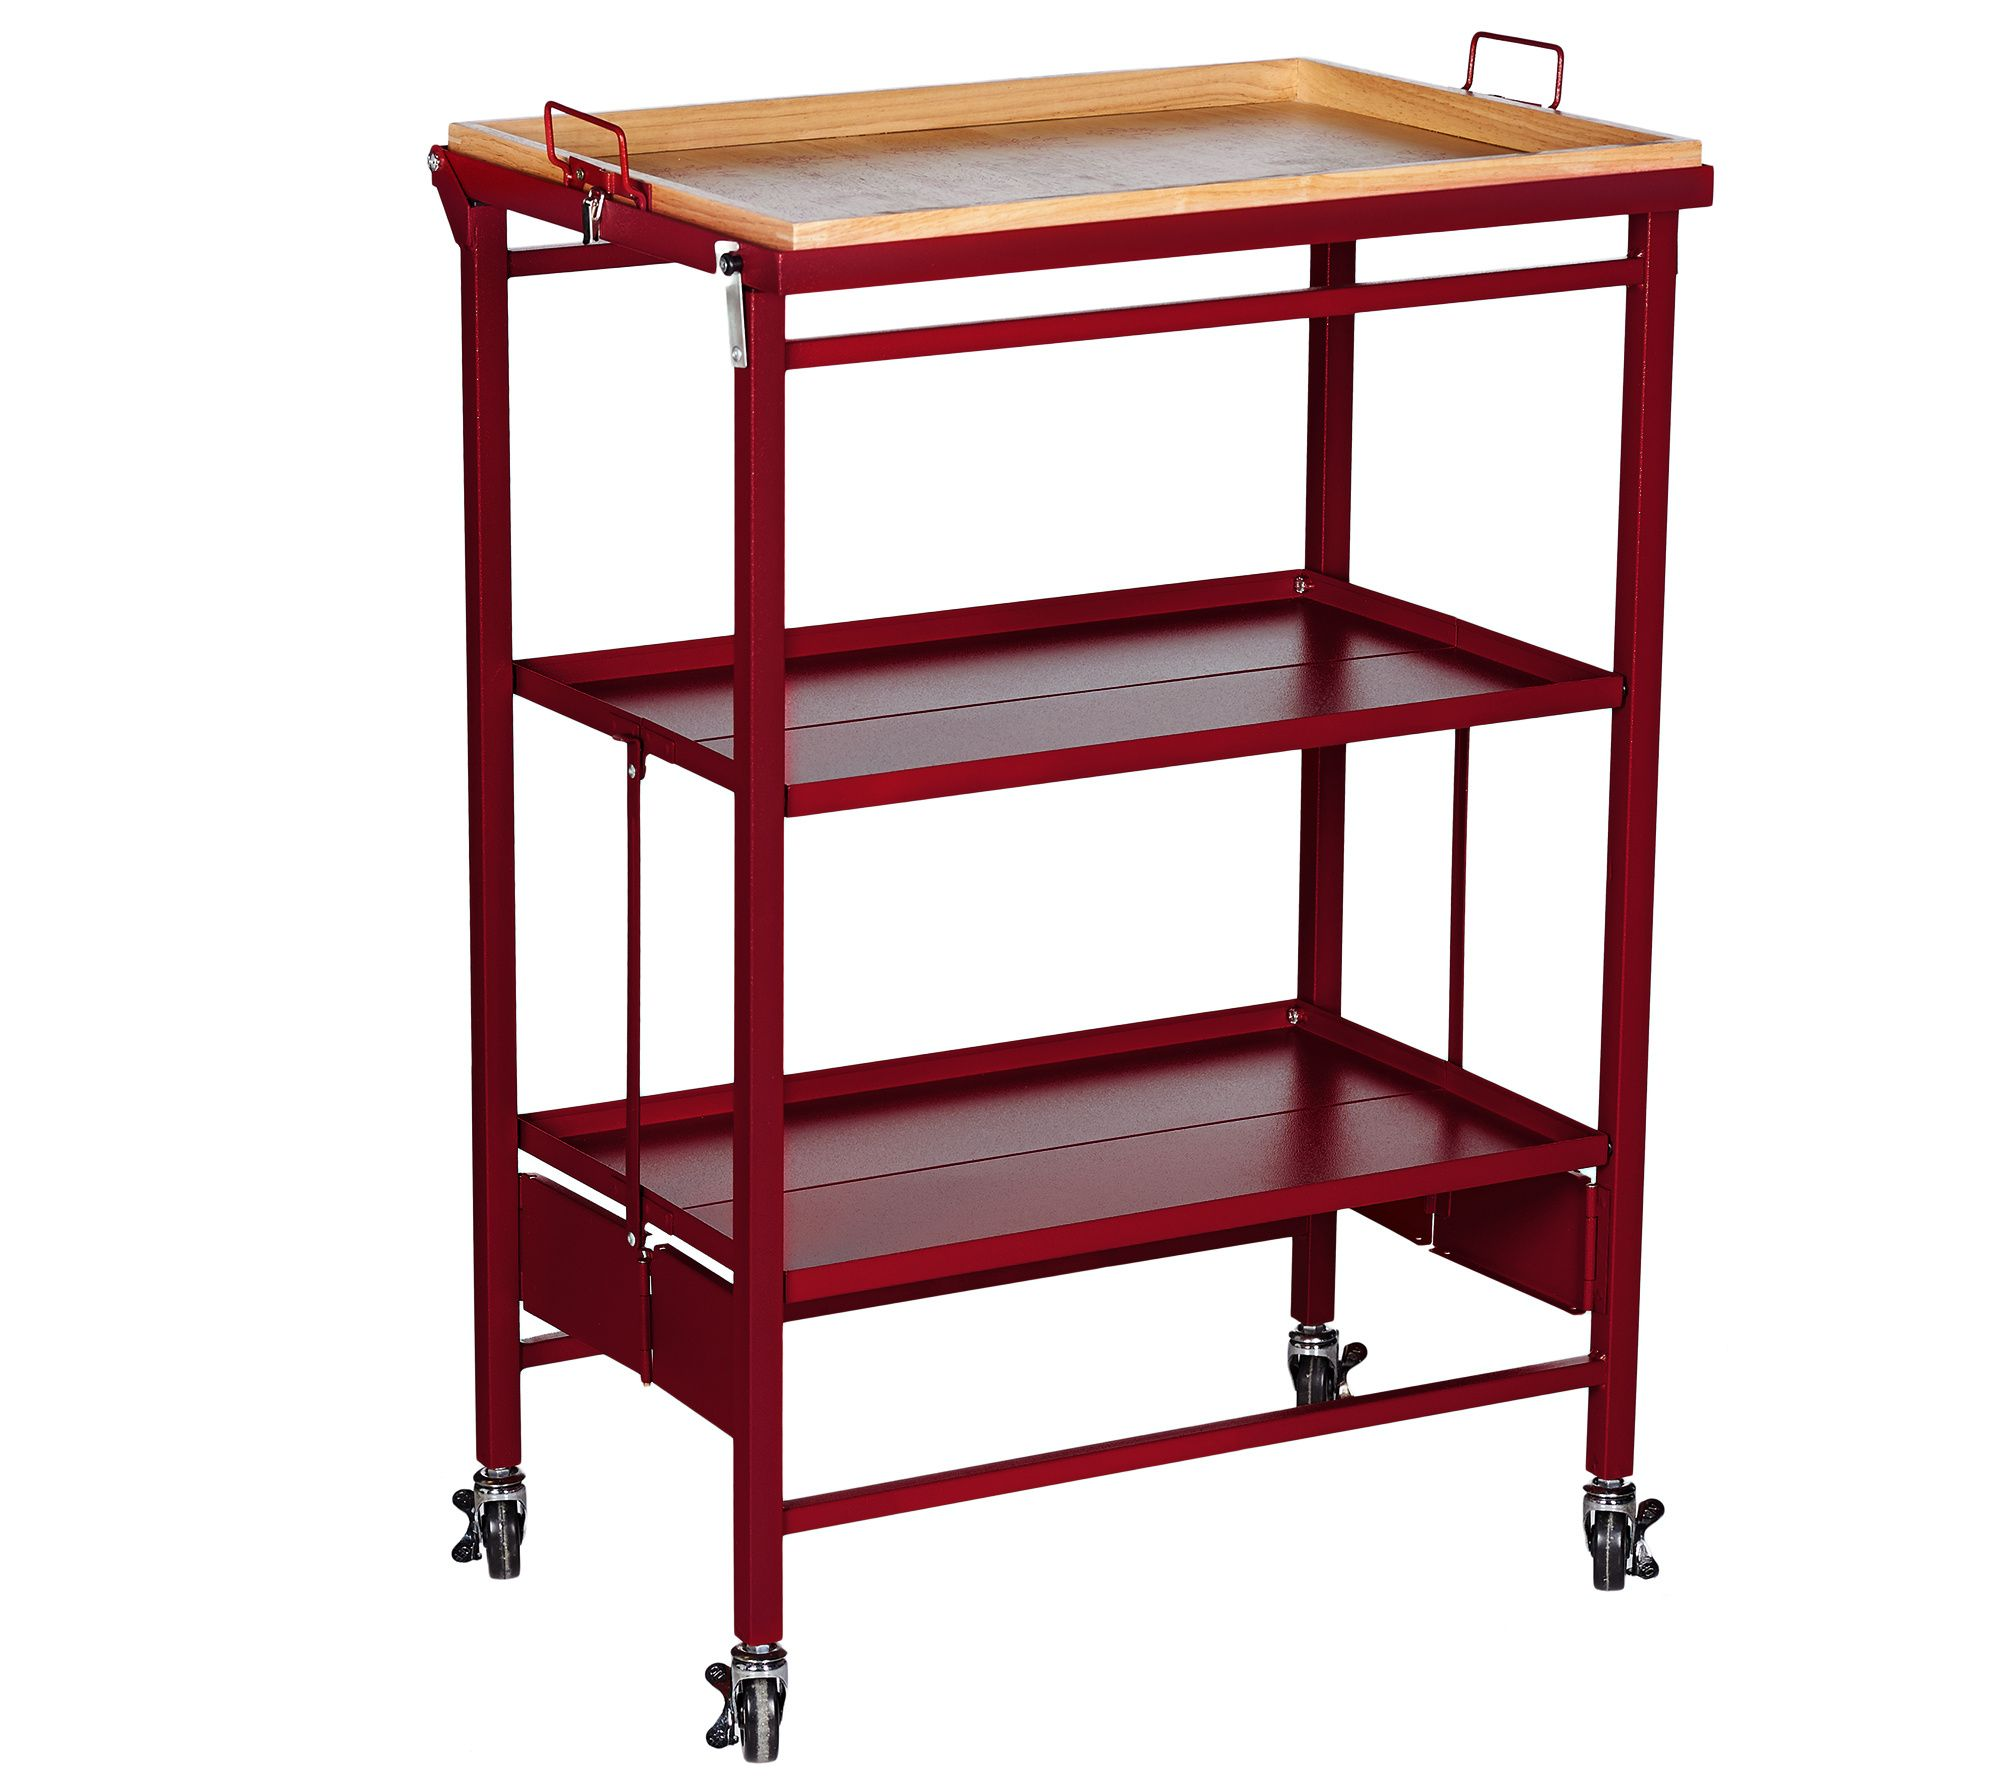 Instant Counter Space When You Need Some Extra Room For Food Prep Just Roll This Temp Tations Cart Into The Kit Kitchen Cart Retro Kitchen Old World Kitchens